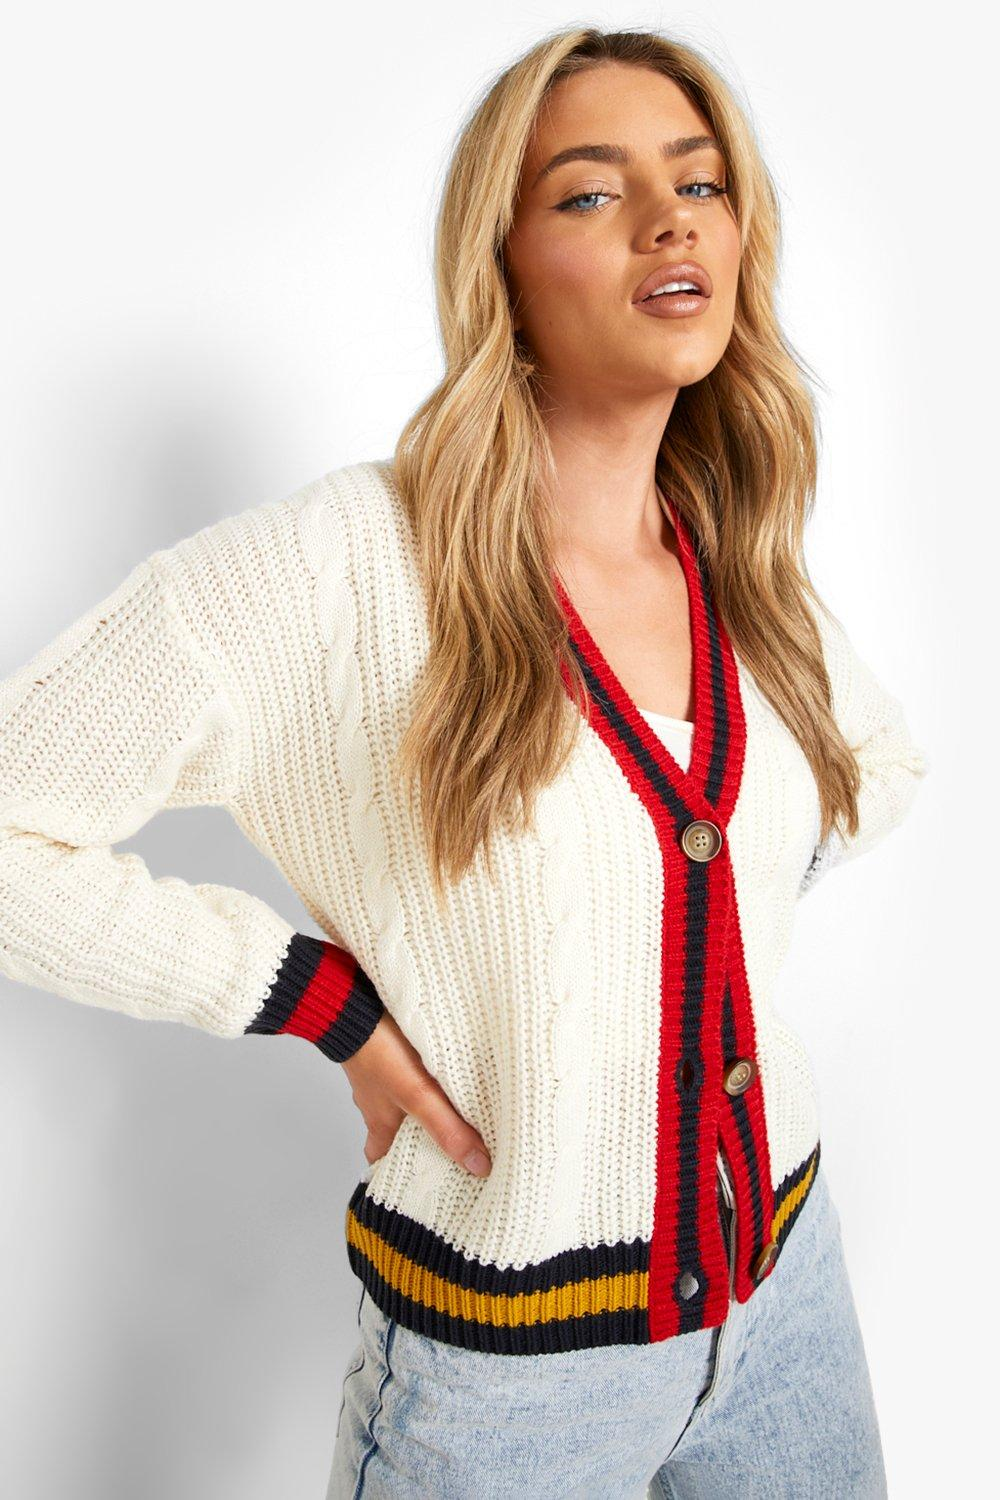 90s Clothing Outfits You Can Buy Now Womens Cable Cropped Varsity Stripe Cardigan - Cream - M $16.00 AT vintagedancer.com